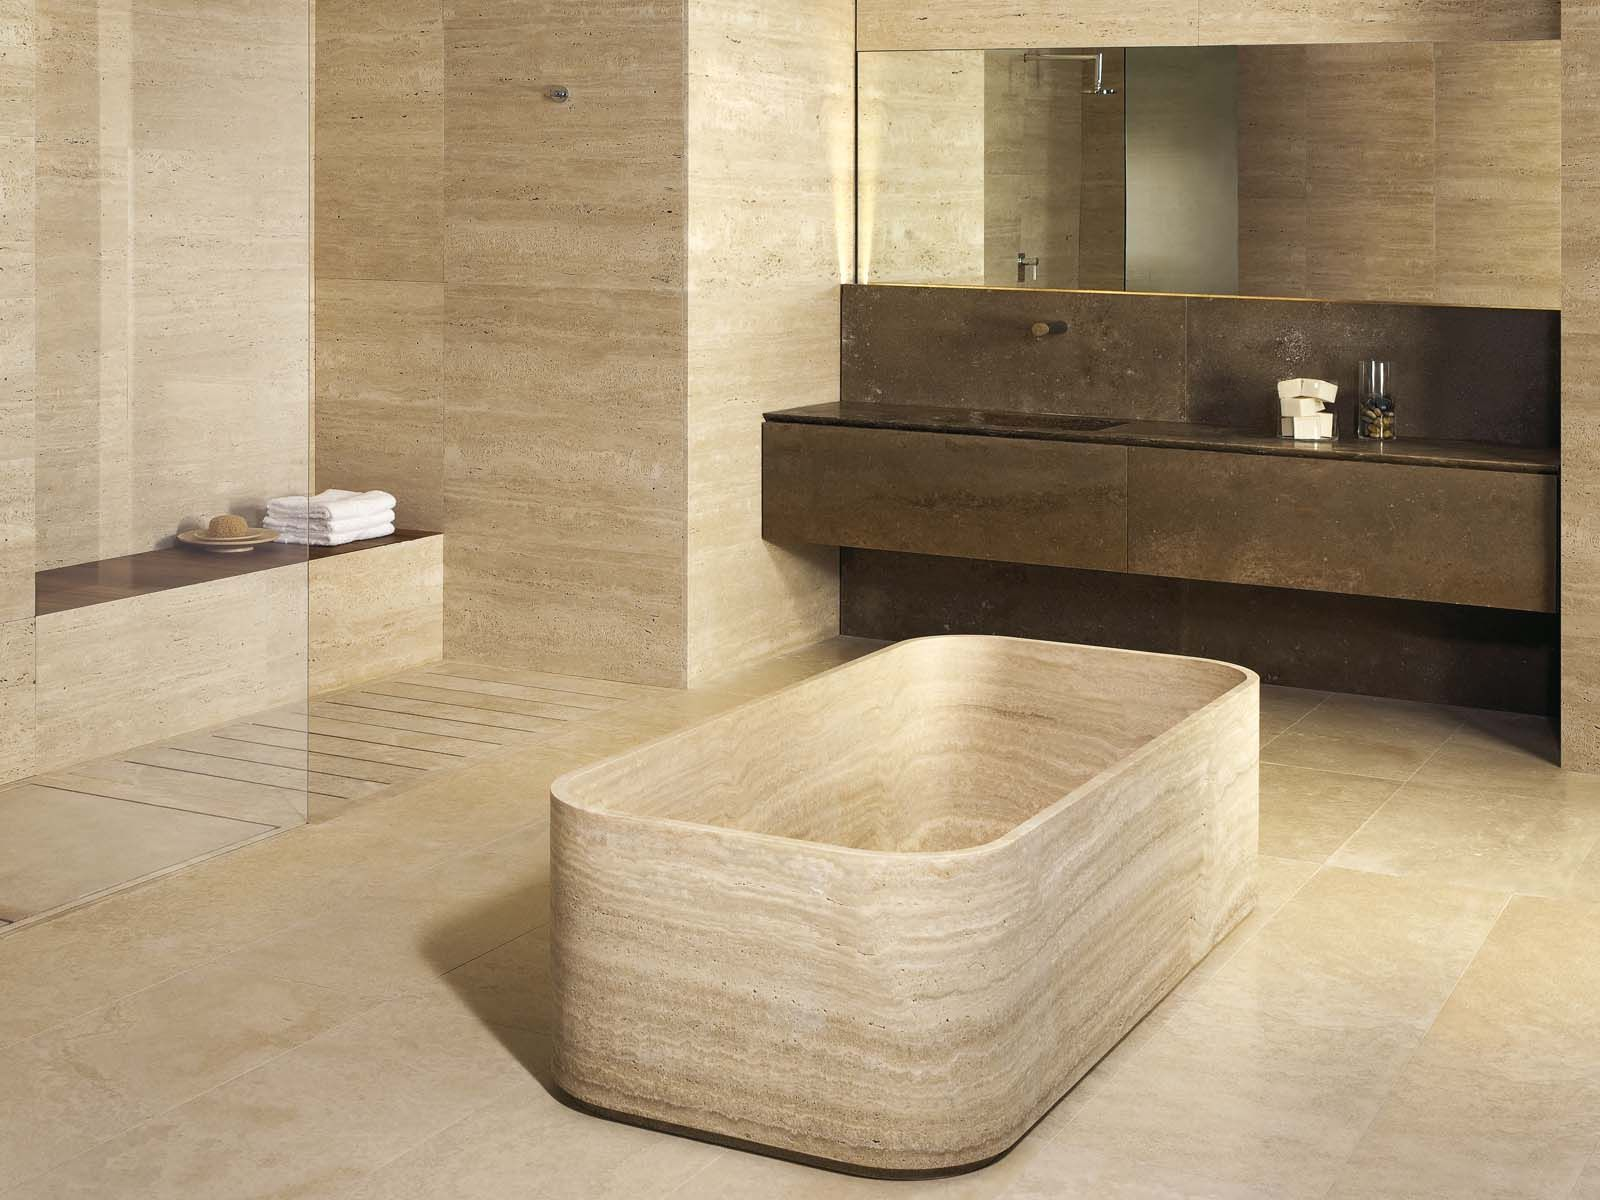 Badewanne Aus Stein Le Cave Bathroom System In Classico Travertine 43 Noce